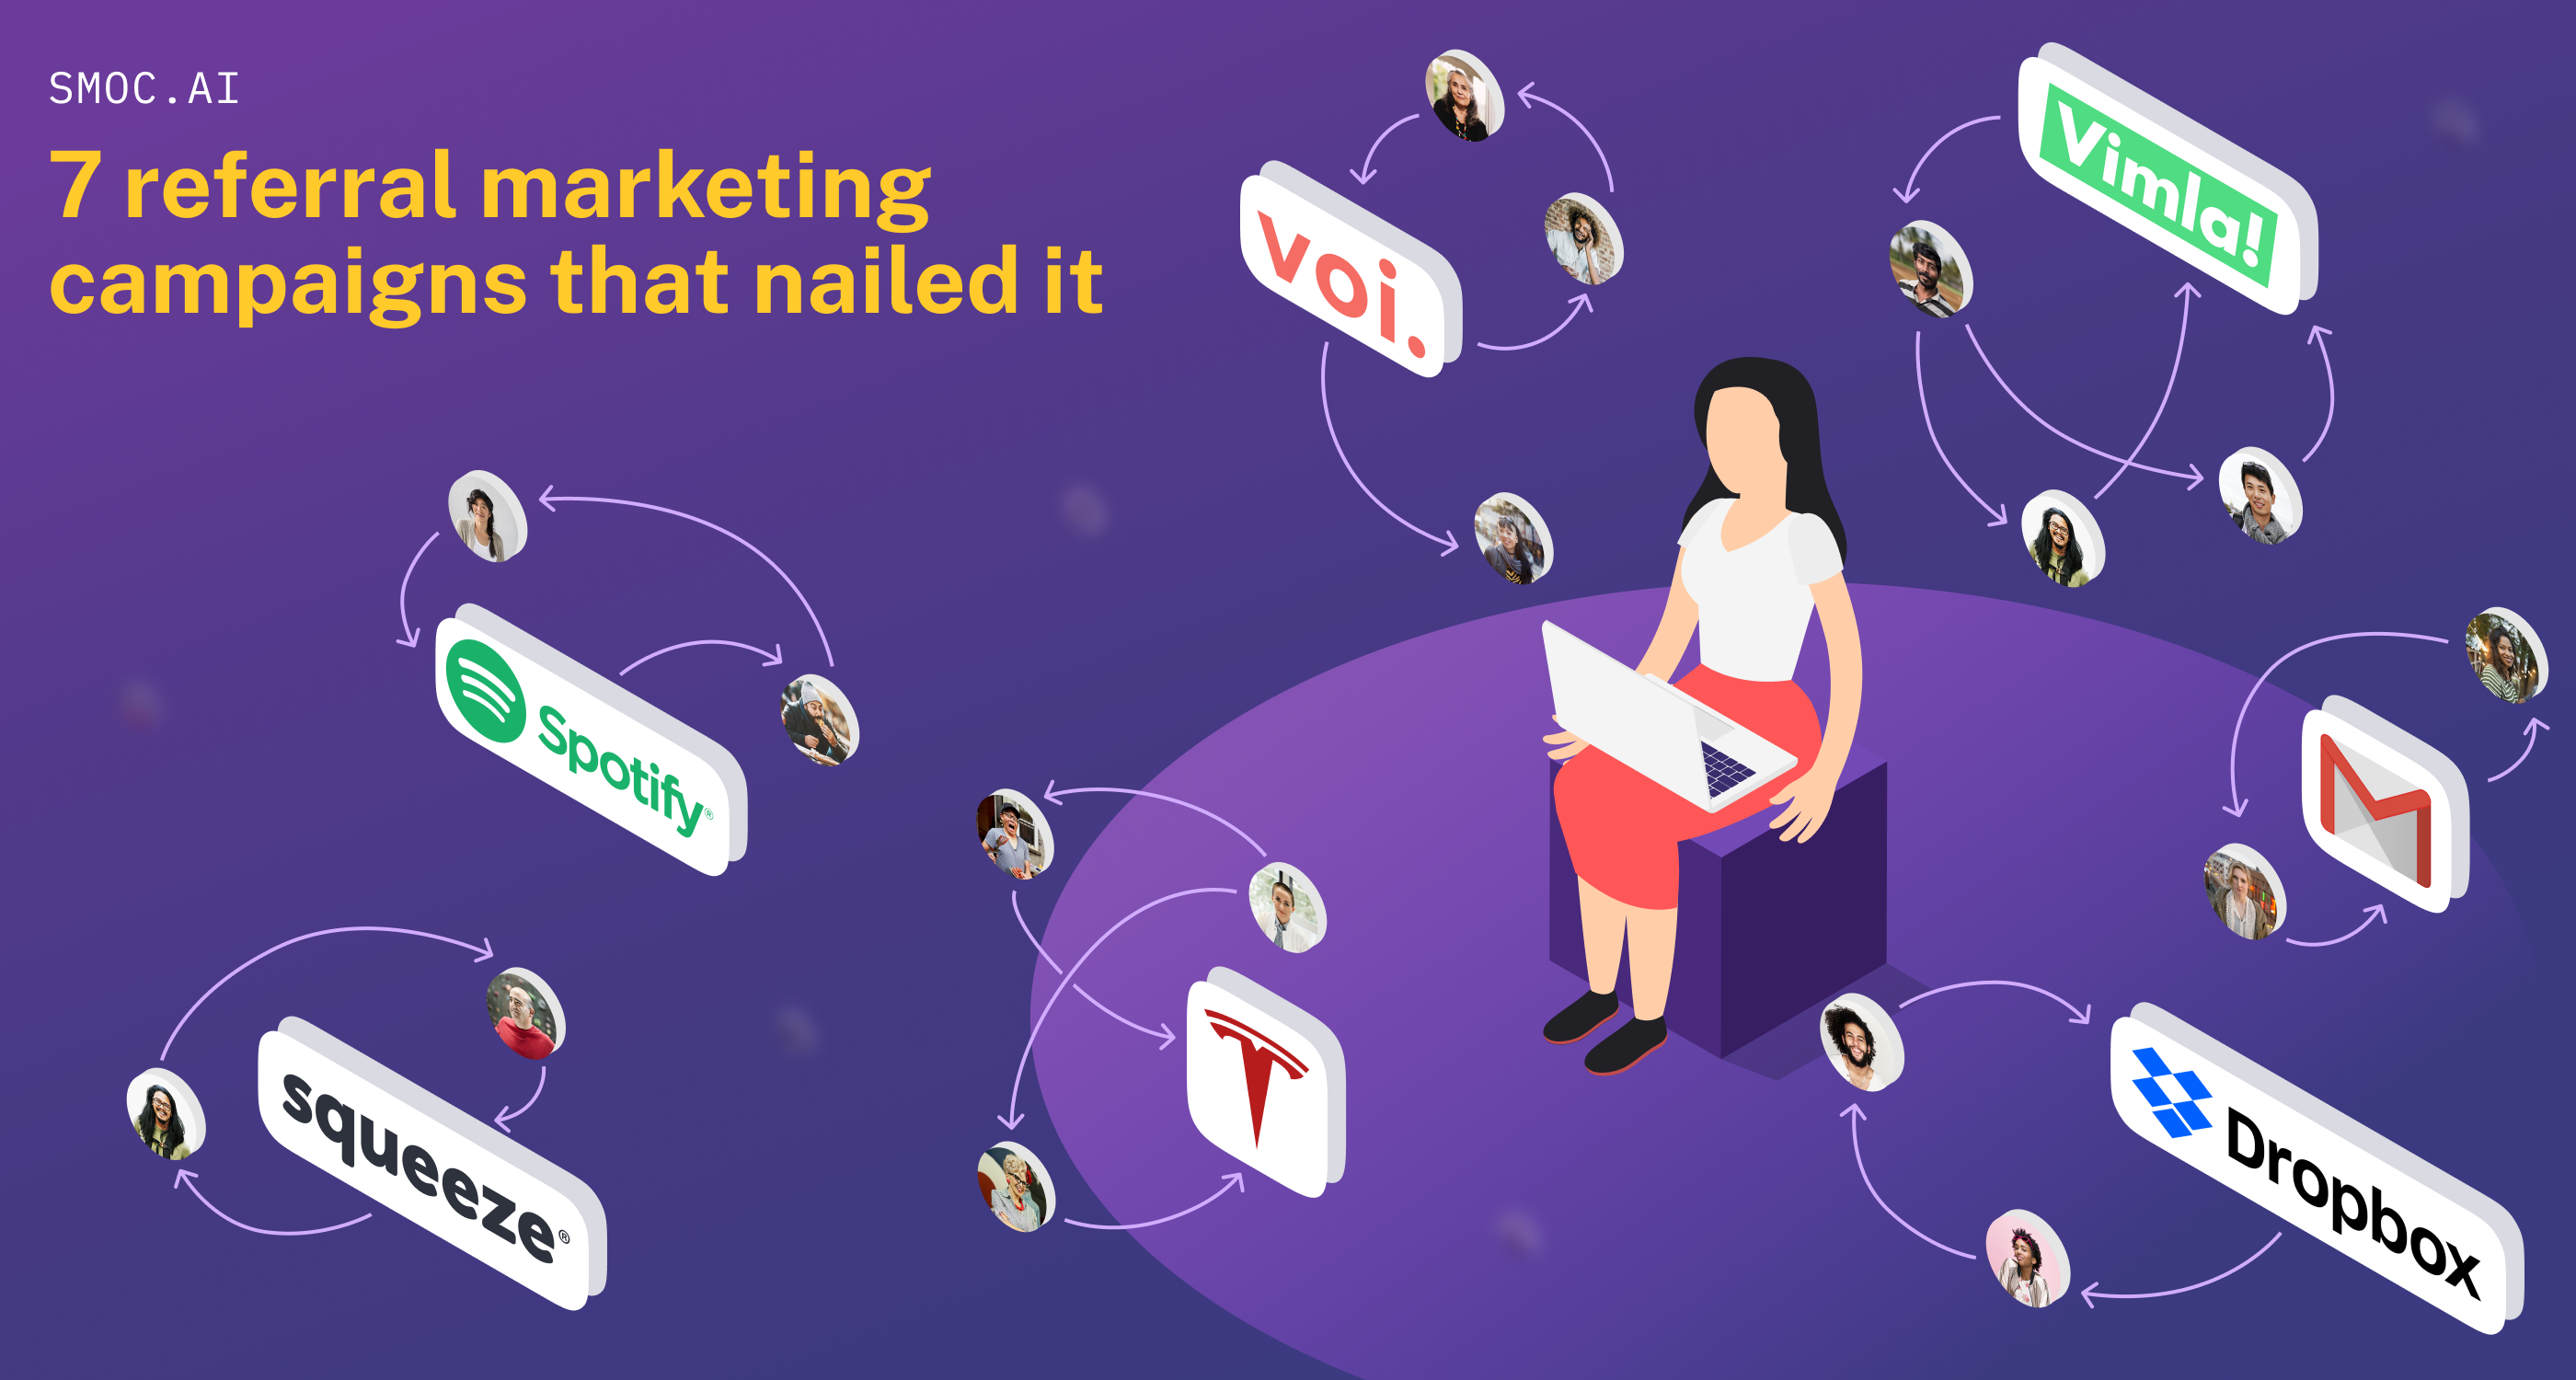 7 referral marketing campaigns that nailed it